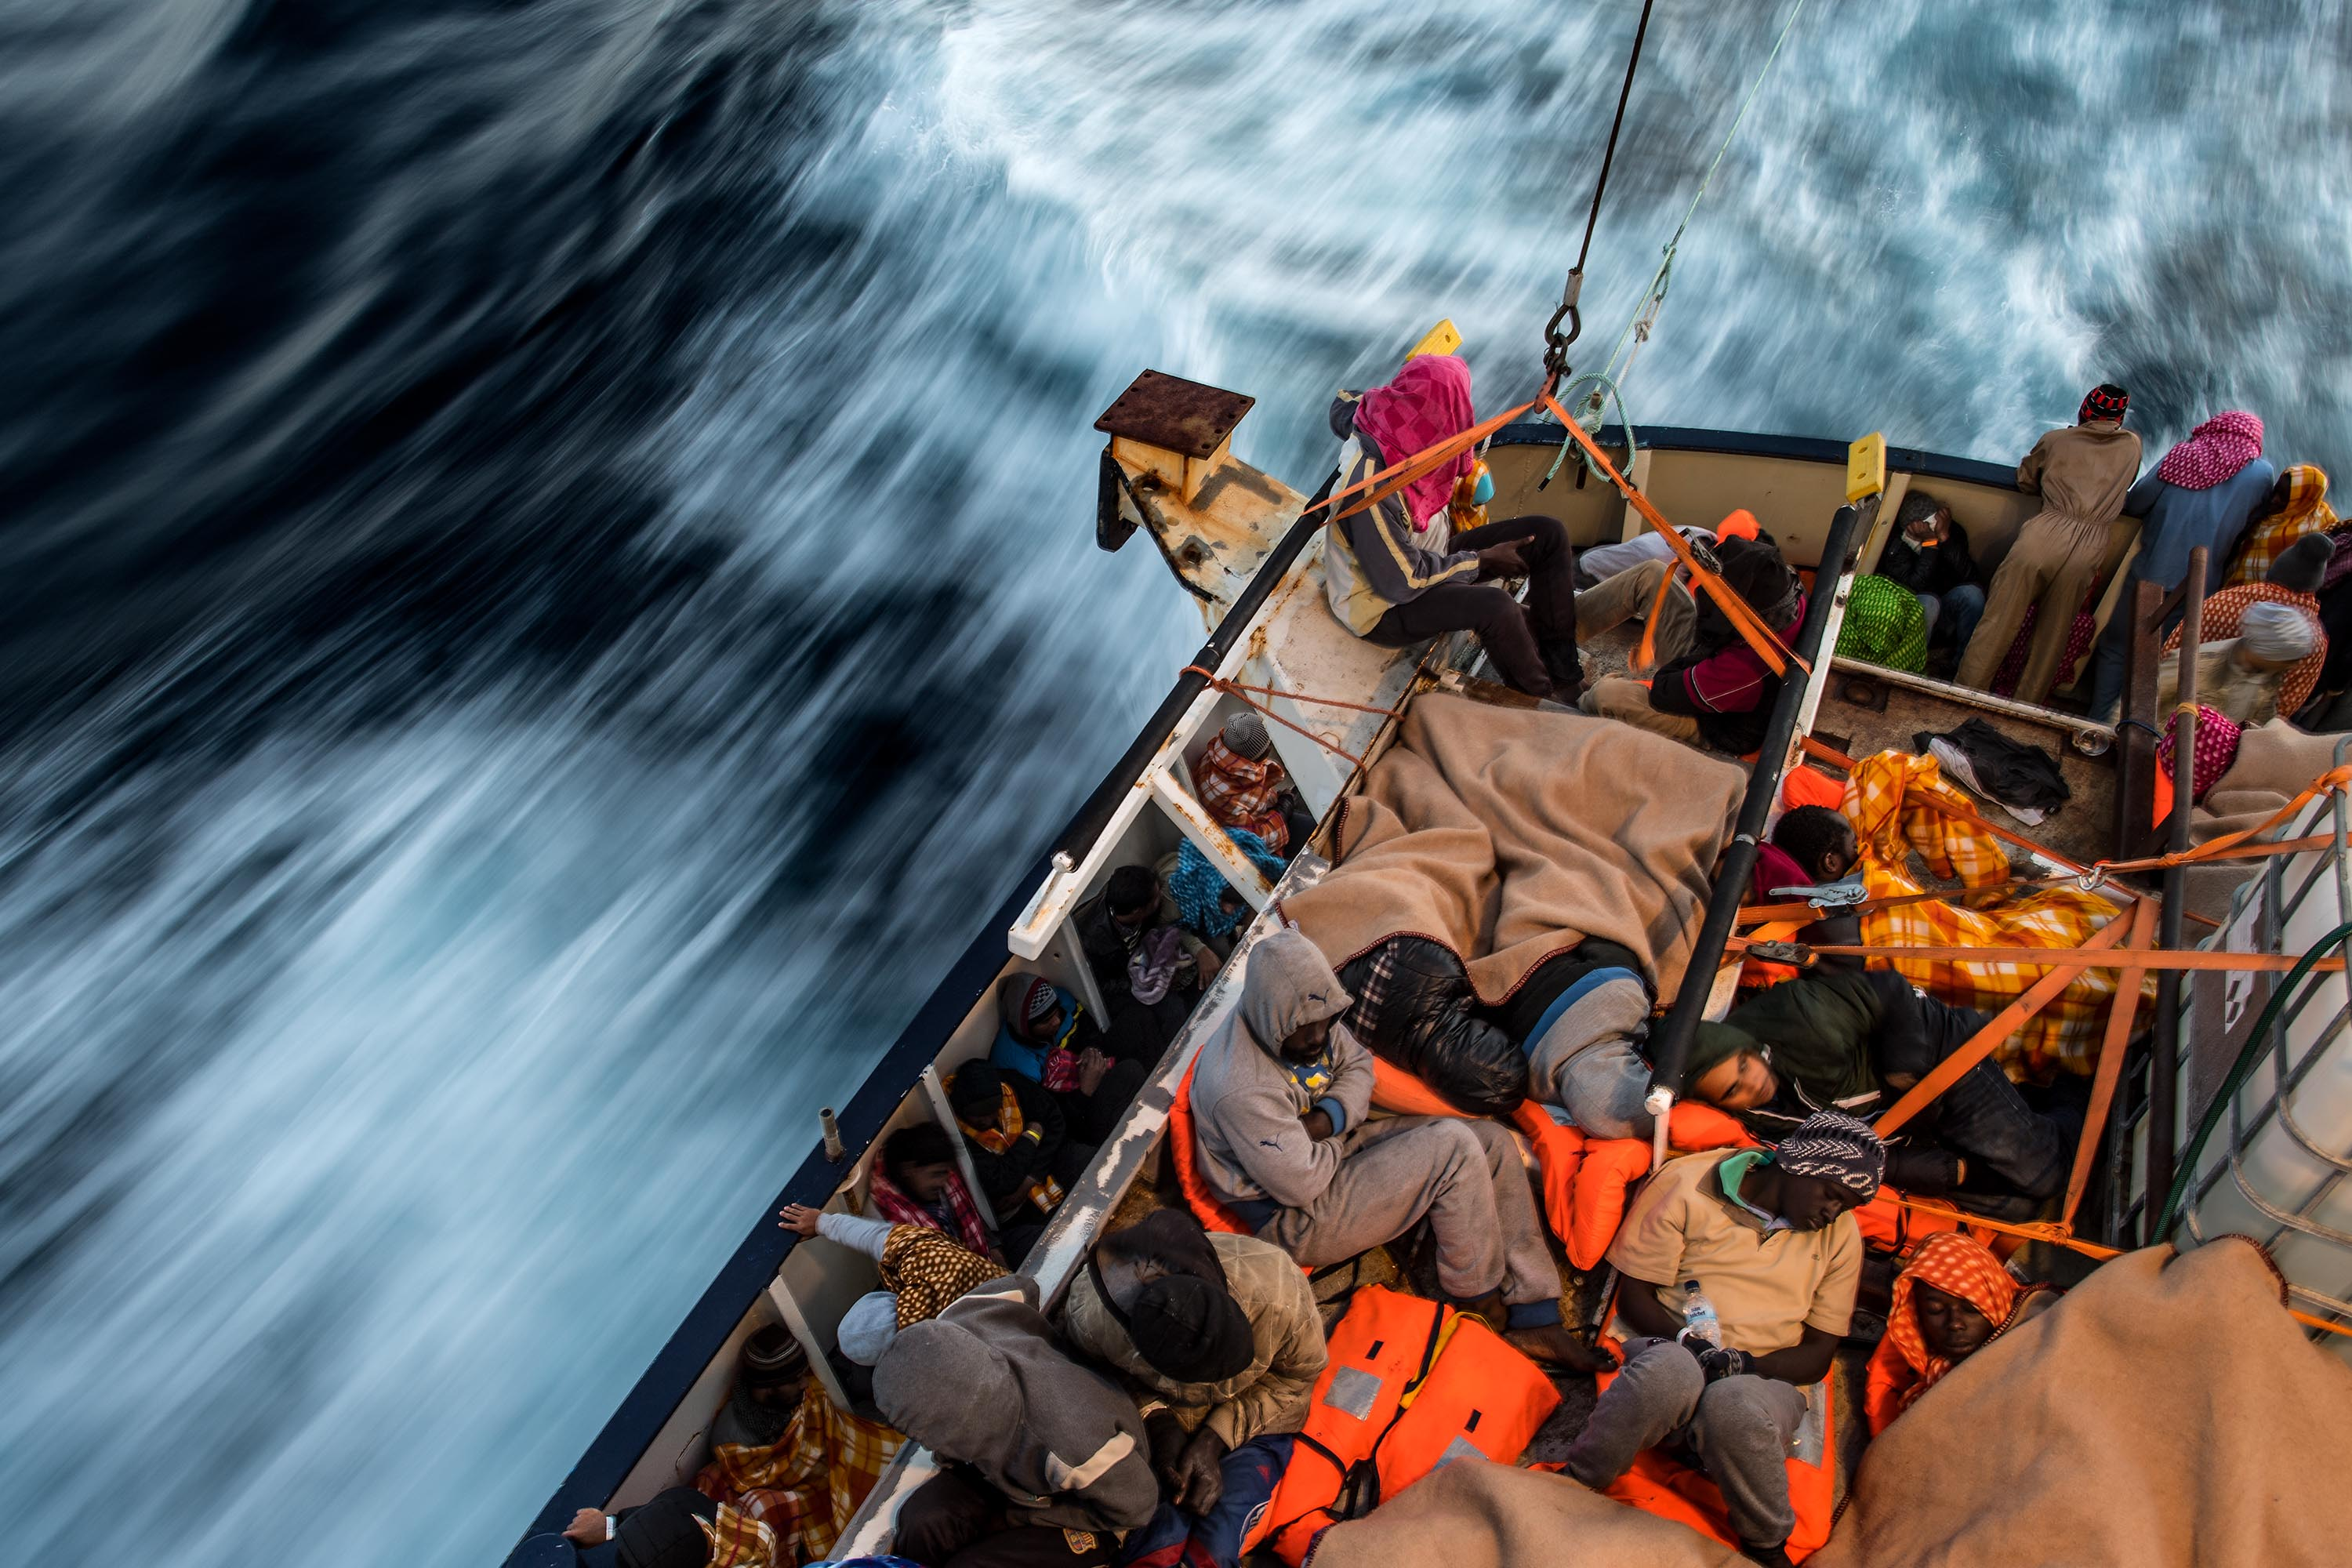 A picture of migrants packed together tightly in a boat sailing on the sea.